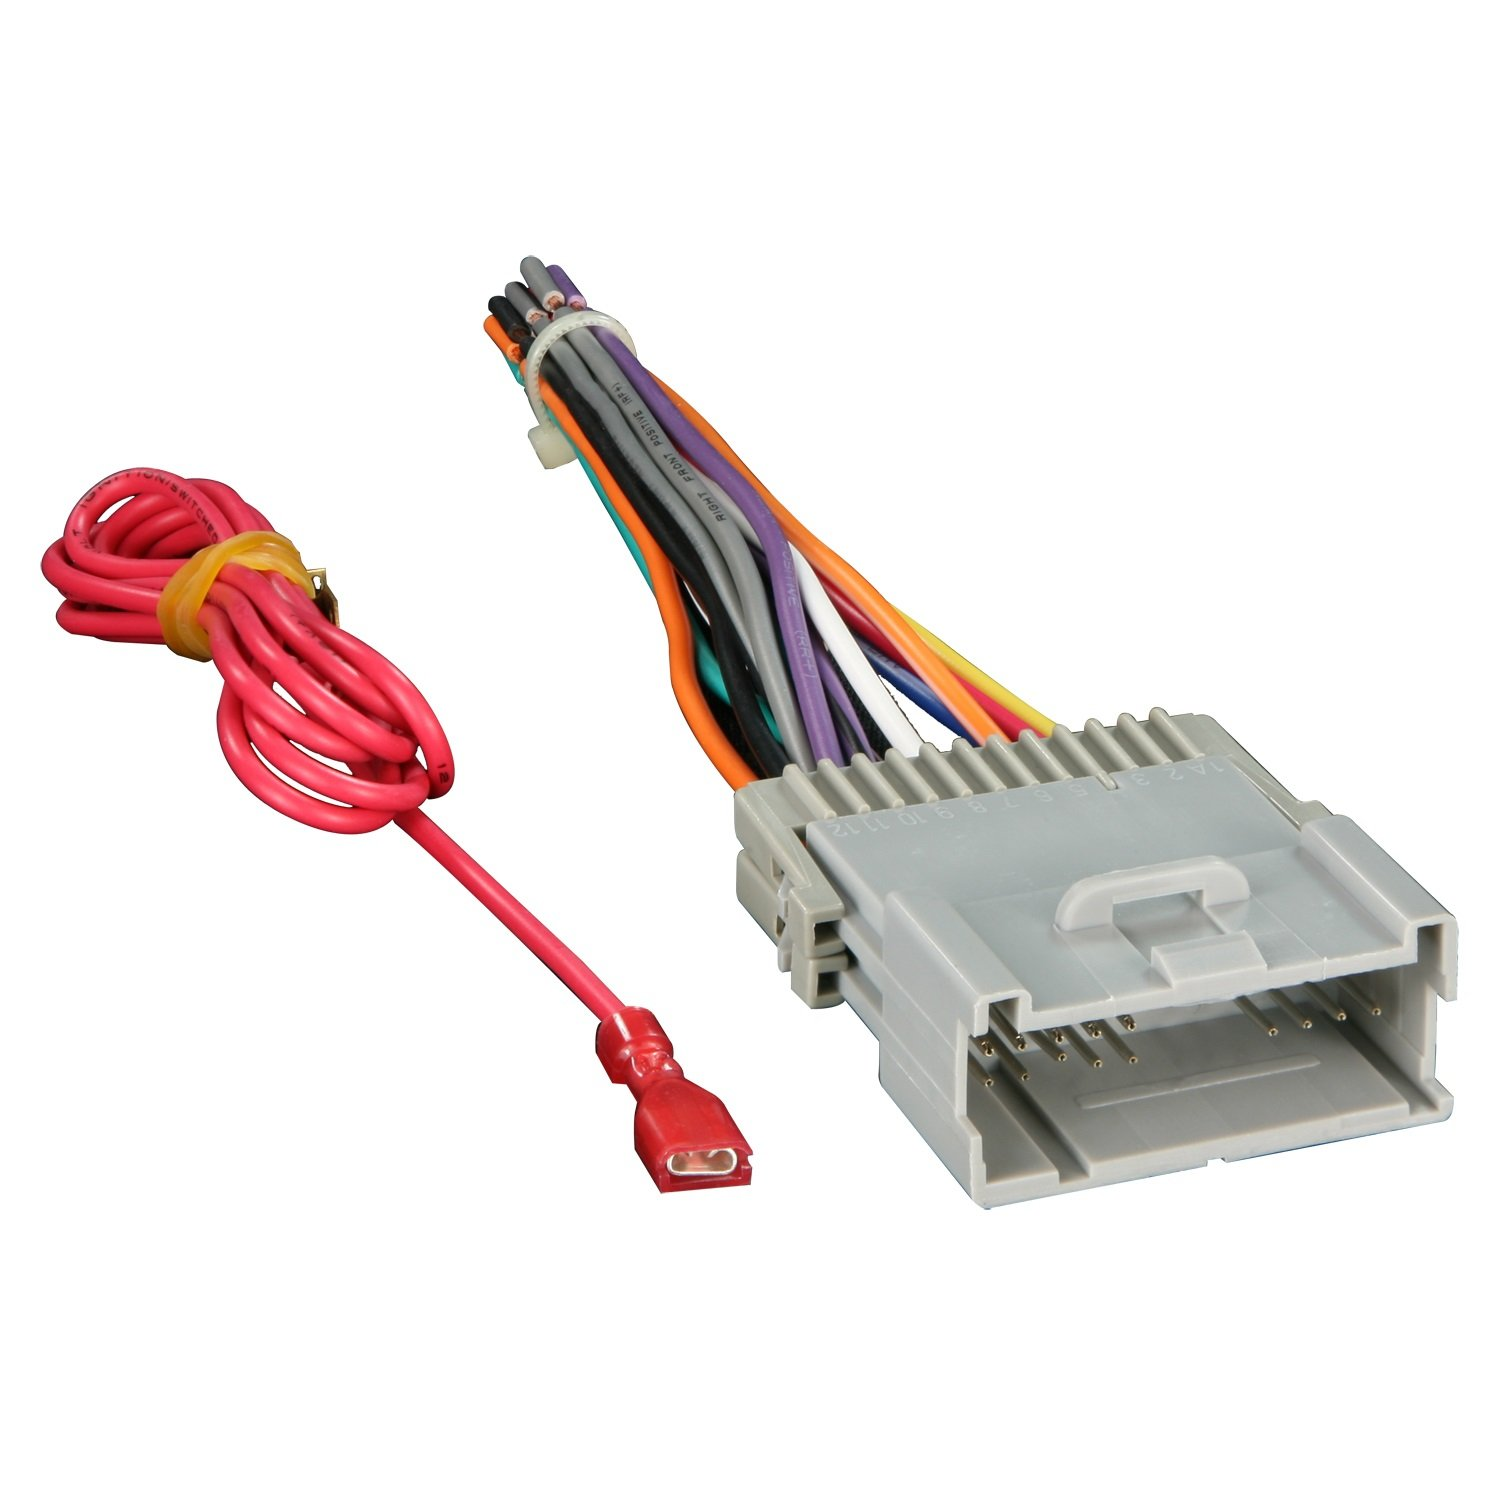 61eewxp9orL._SL1500_ amazon com metra 70 2003 radio wiring harness for gm 98 08 how to connect a wire harness for car stereo at nearapp.co